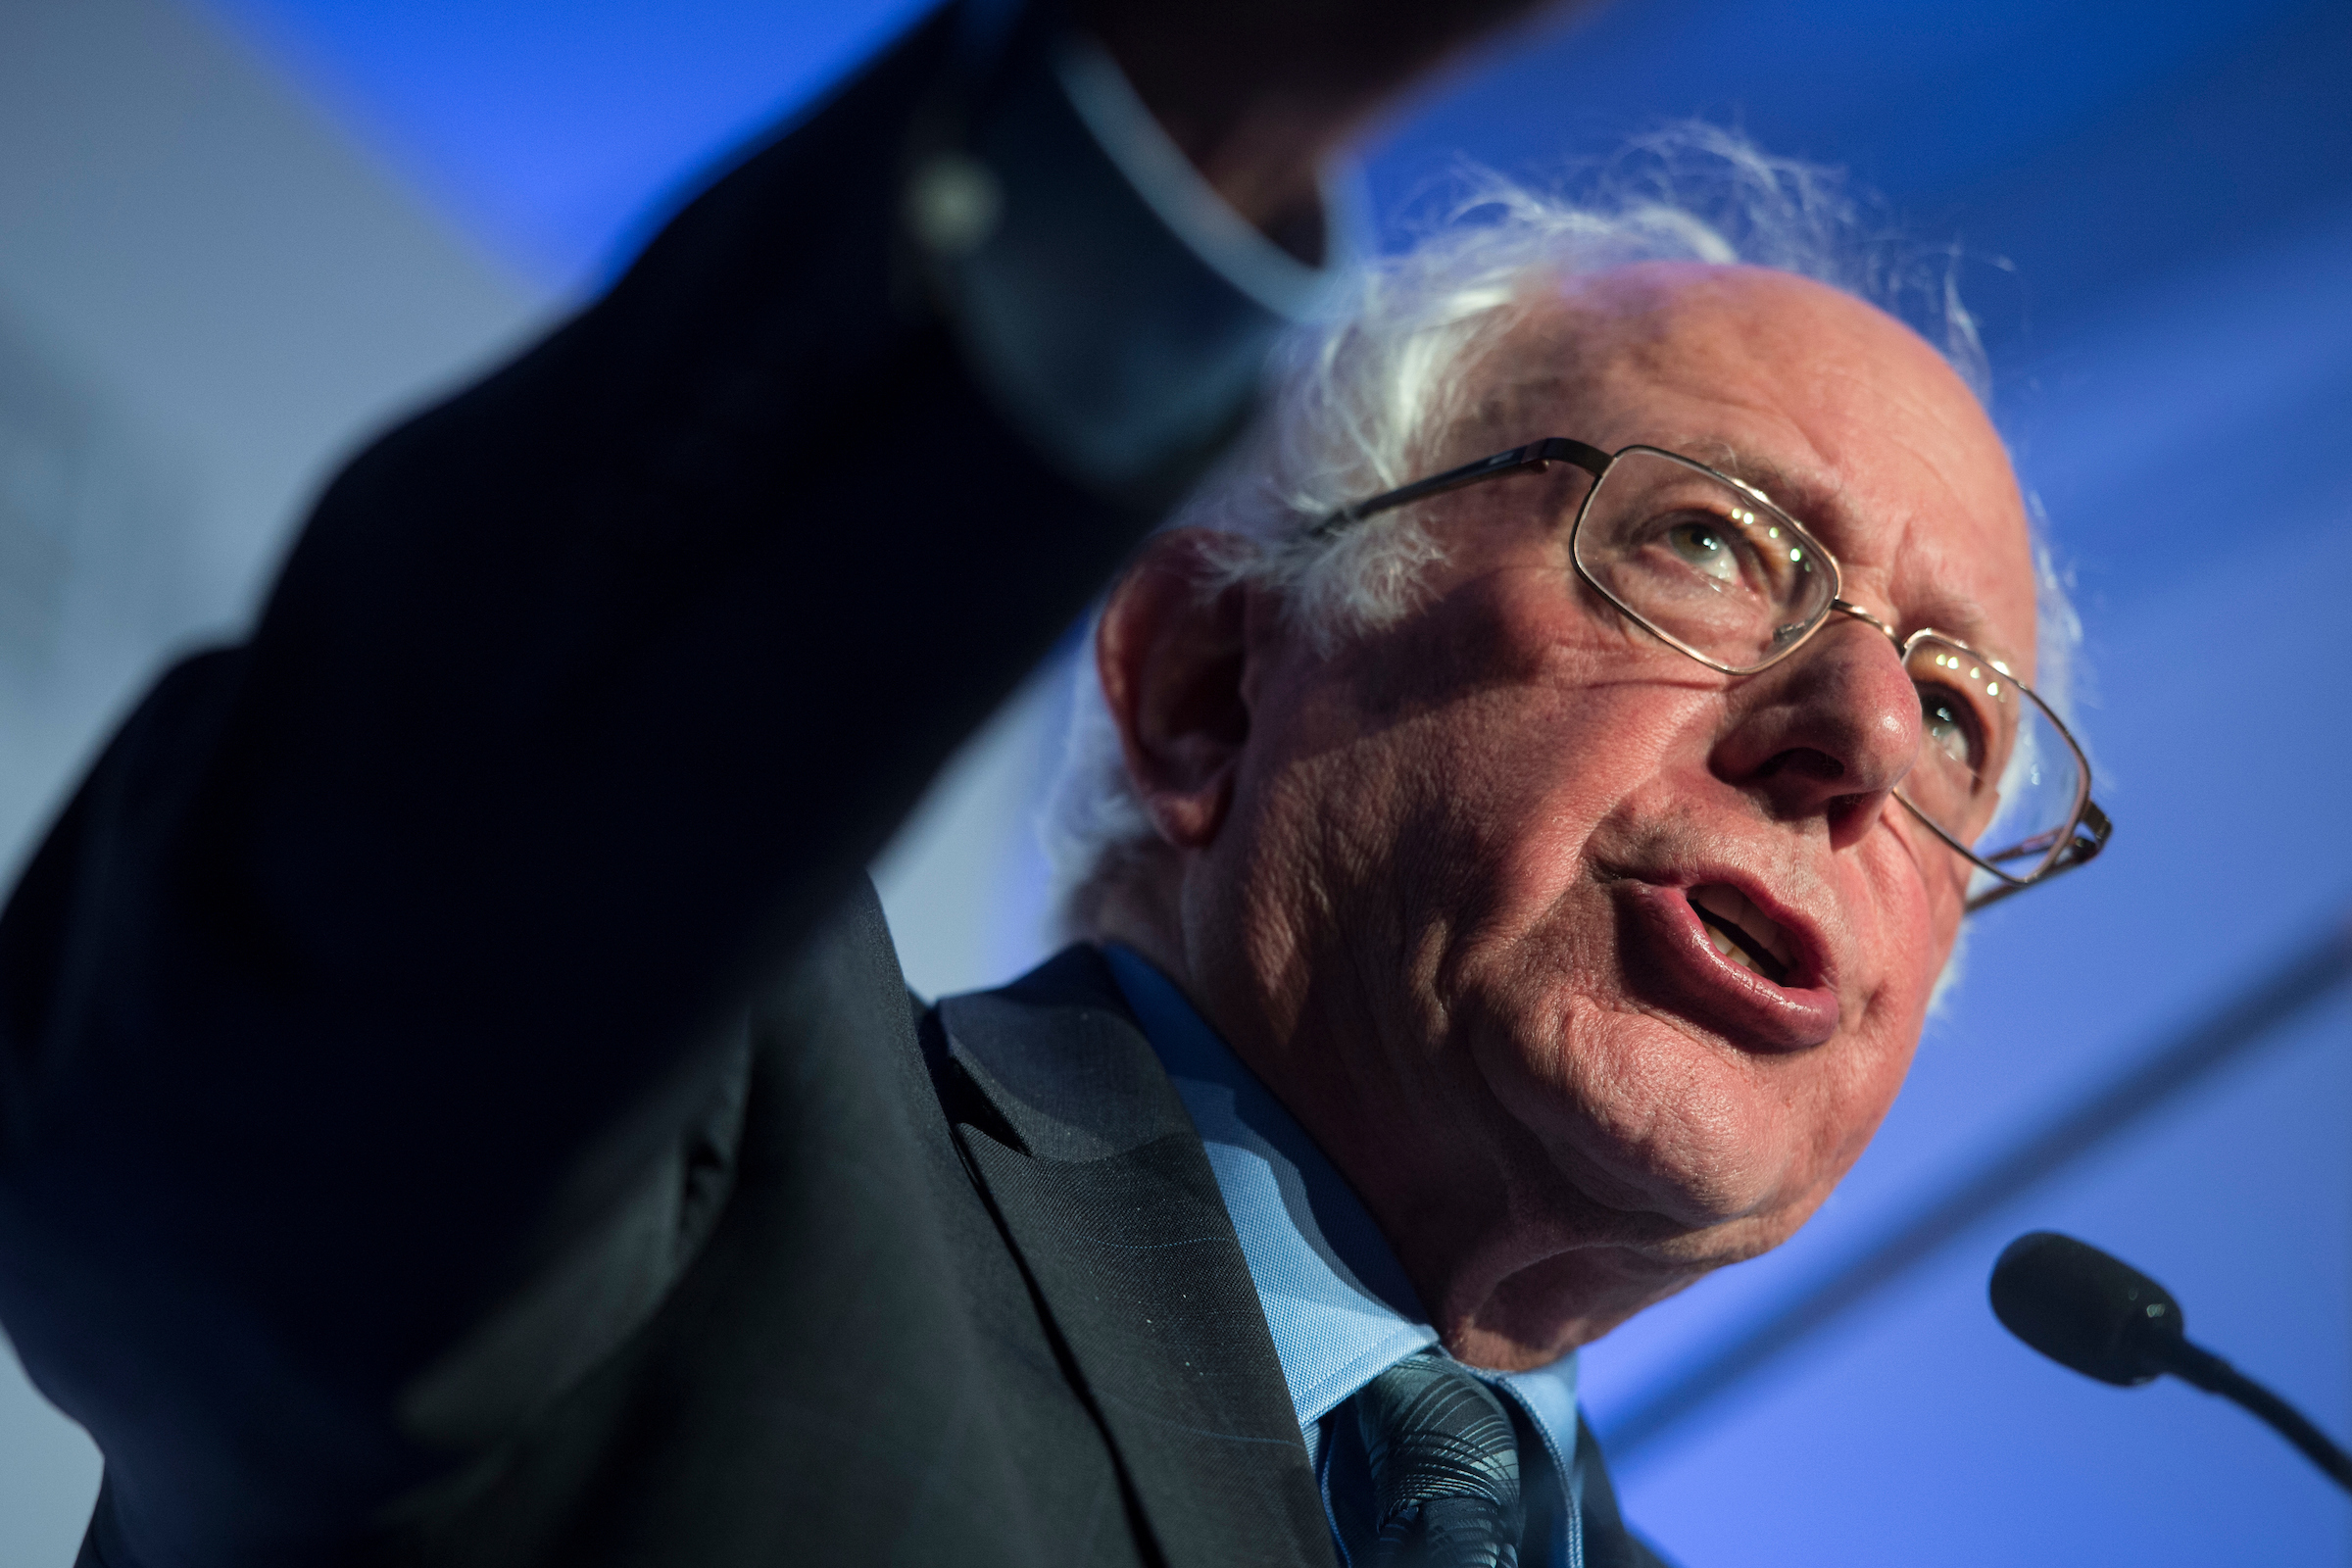 Sen. Bernie Sanders, D-Vt., above, and congressional candidate Alexandria Ocasio-Cortez, D-N.Y., will headline two rallies in Kansas this weekend. (Sarah Silbiger/CQ Roll Call)